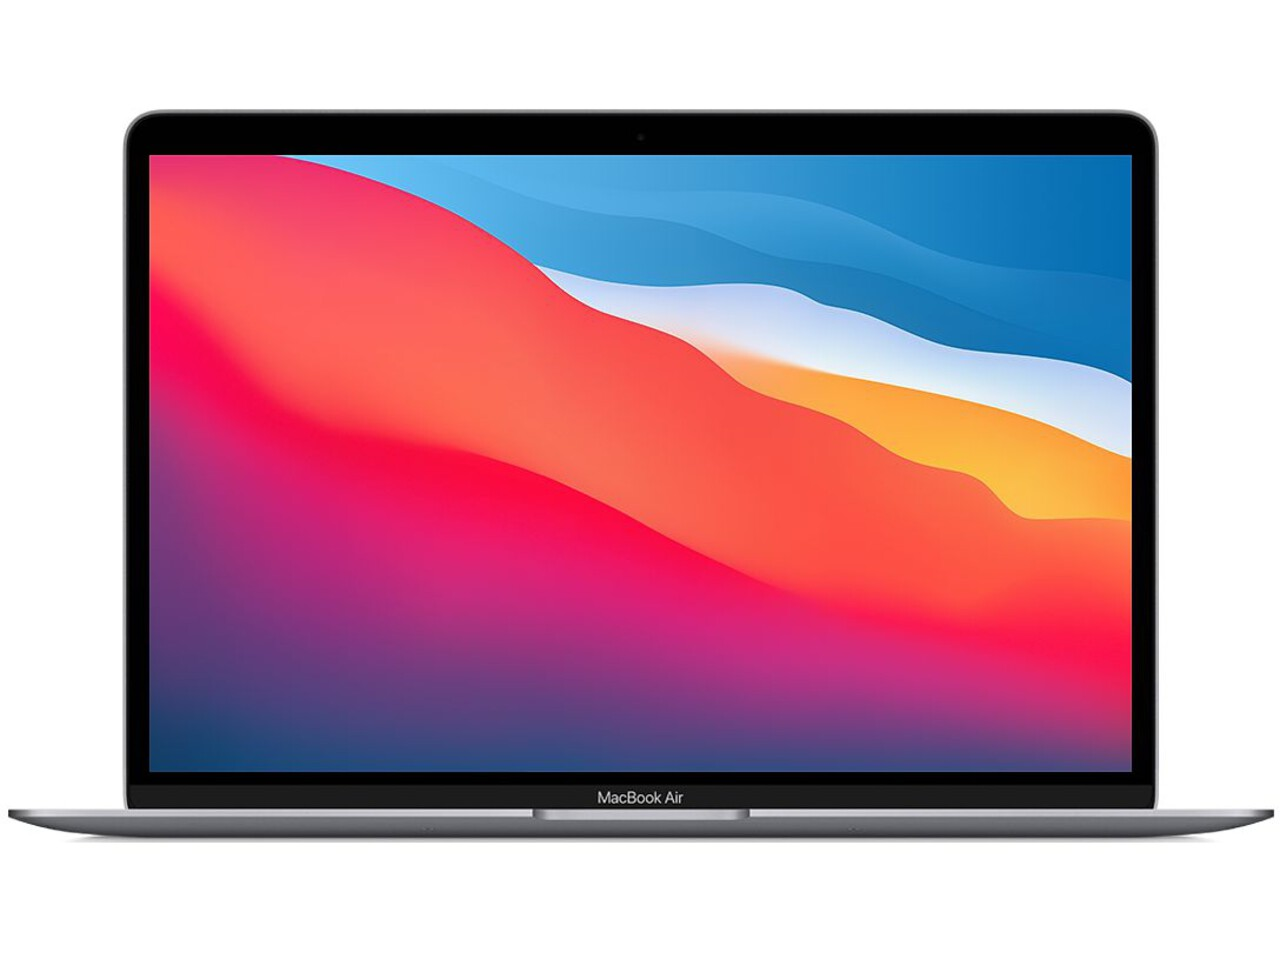 macbook air 13 inch 2020 space gray apple silicon